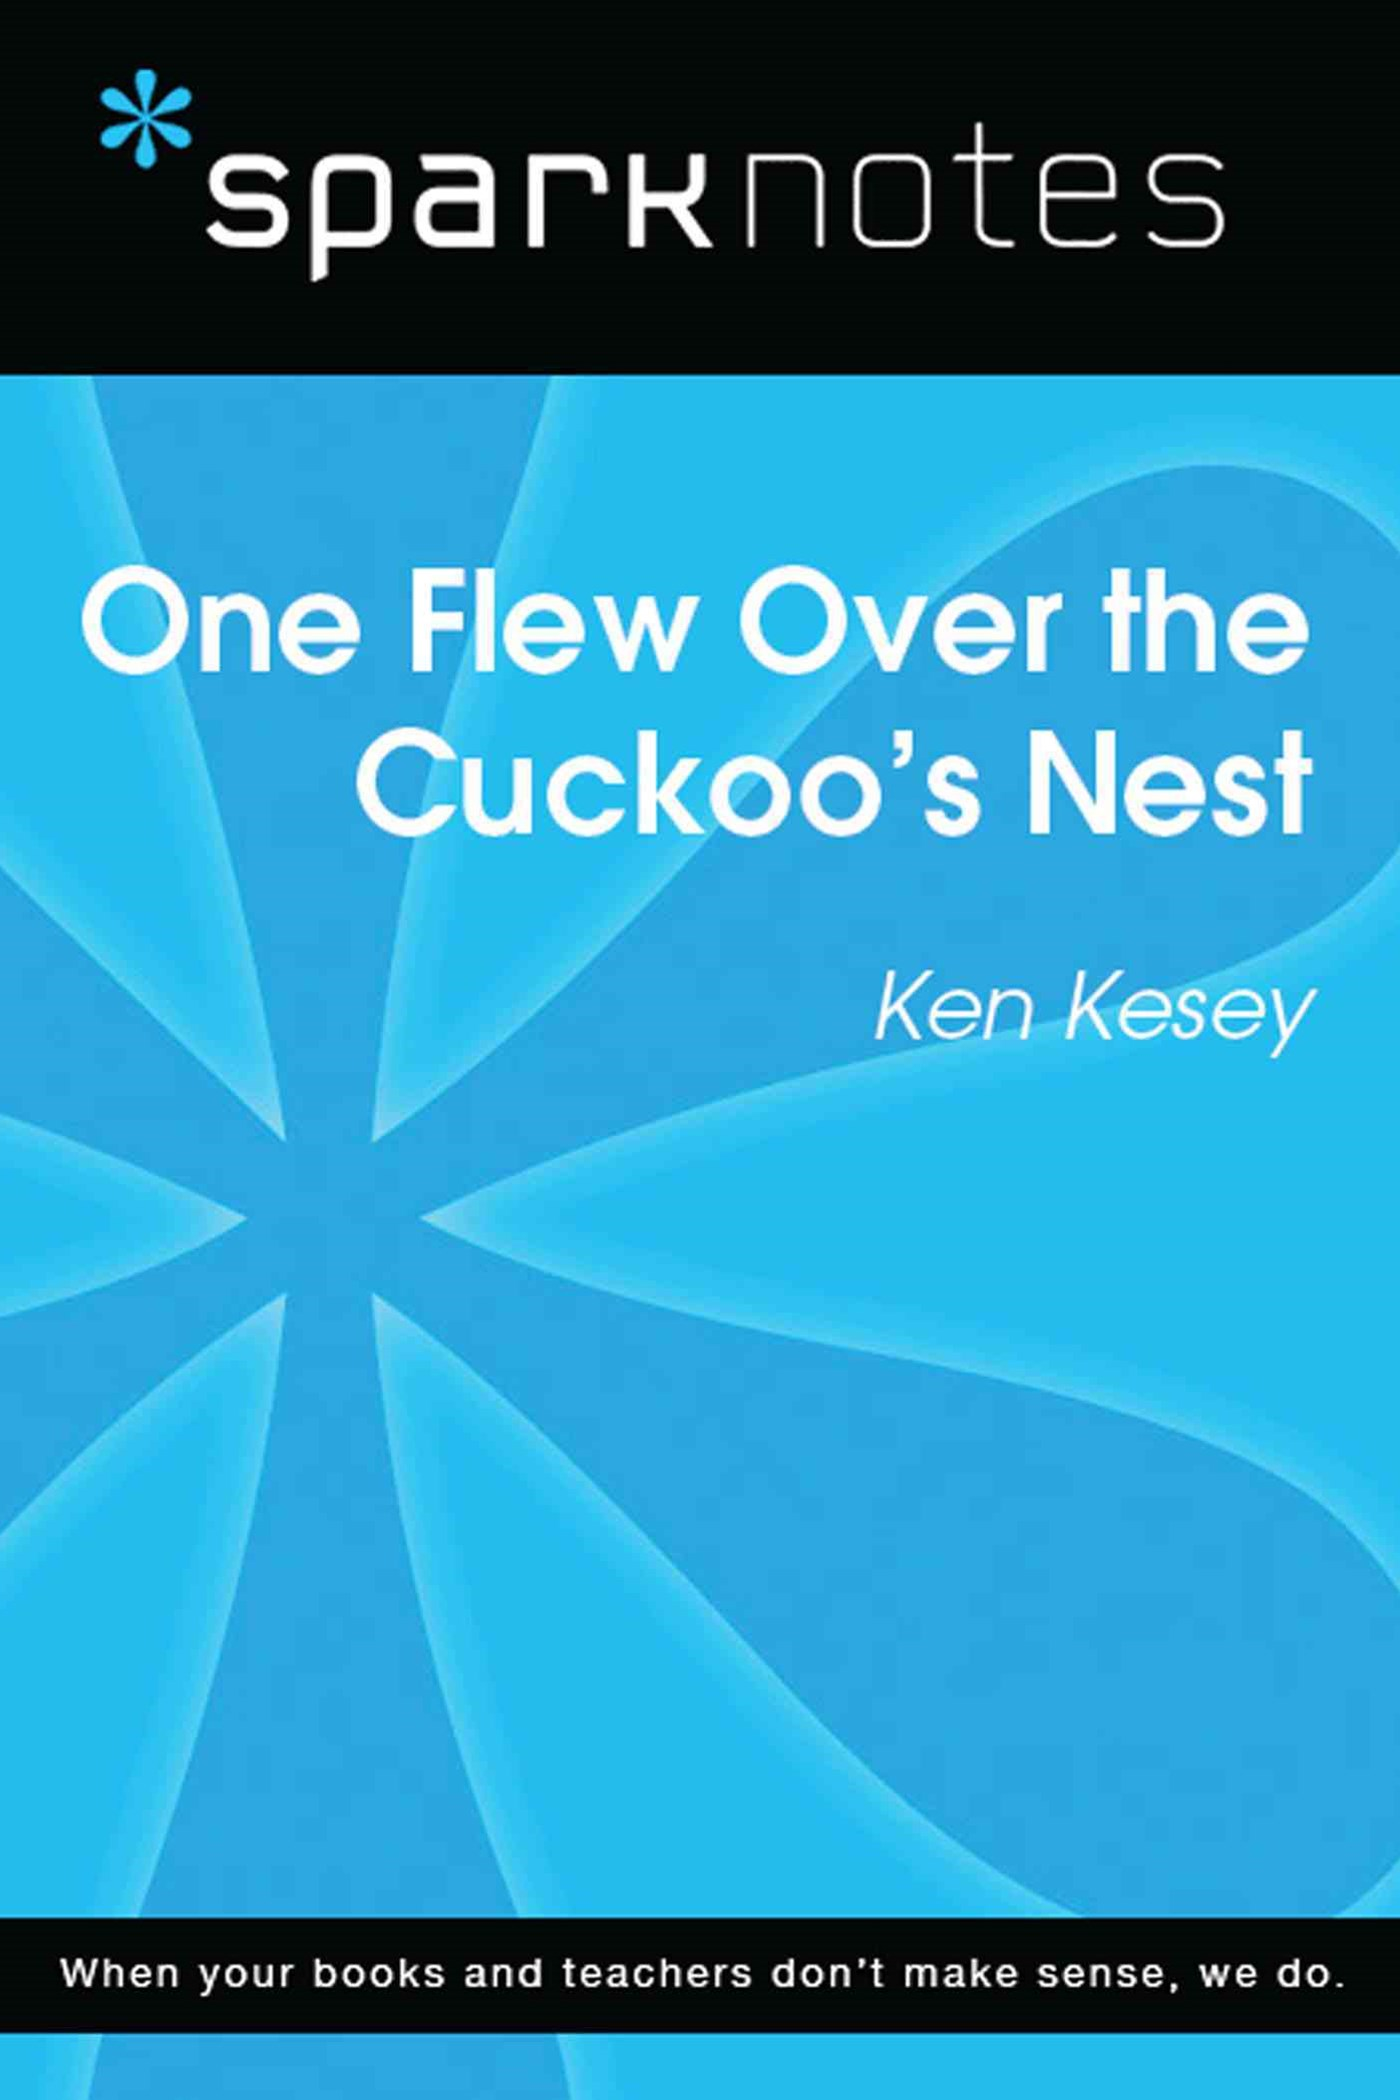 One Flew Over the Cuckoo's Nest (SparkNotes Literature Guide)